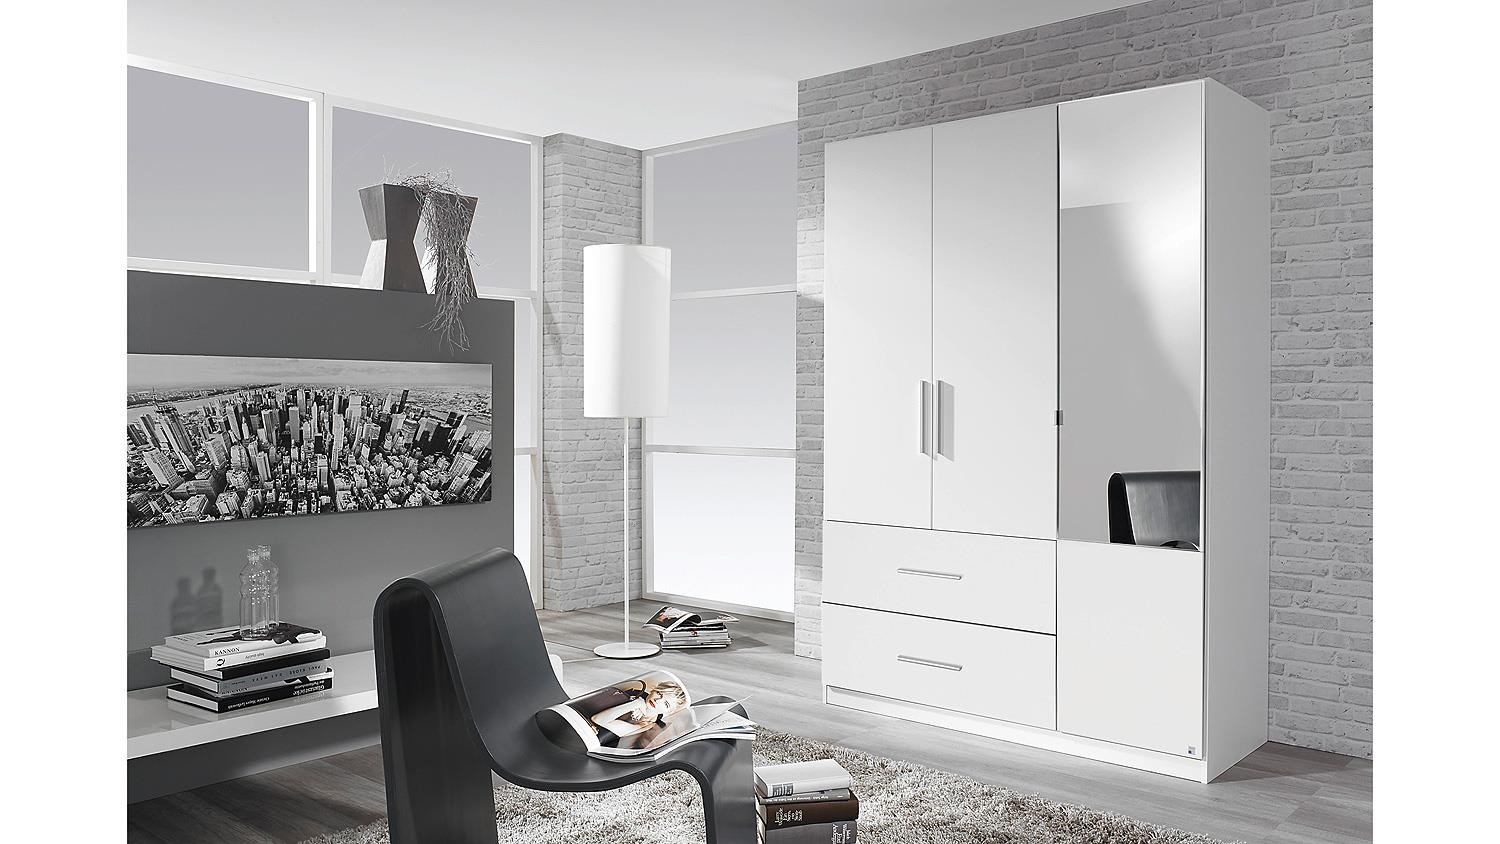 kleiderschrank alvor schrank f r schlafzimmer wei mit spiegel 136 cm. Black Bedroom Furniture Sets. Home Design Ideas